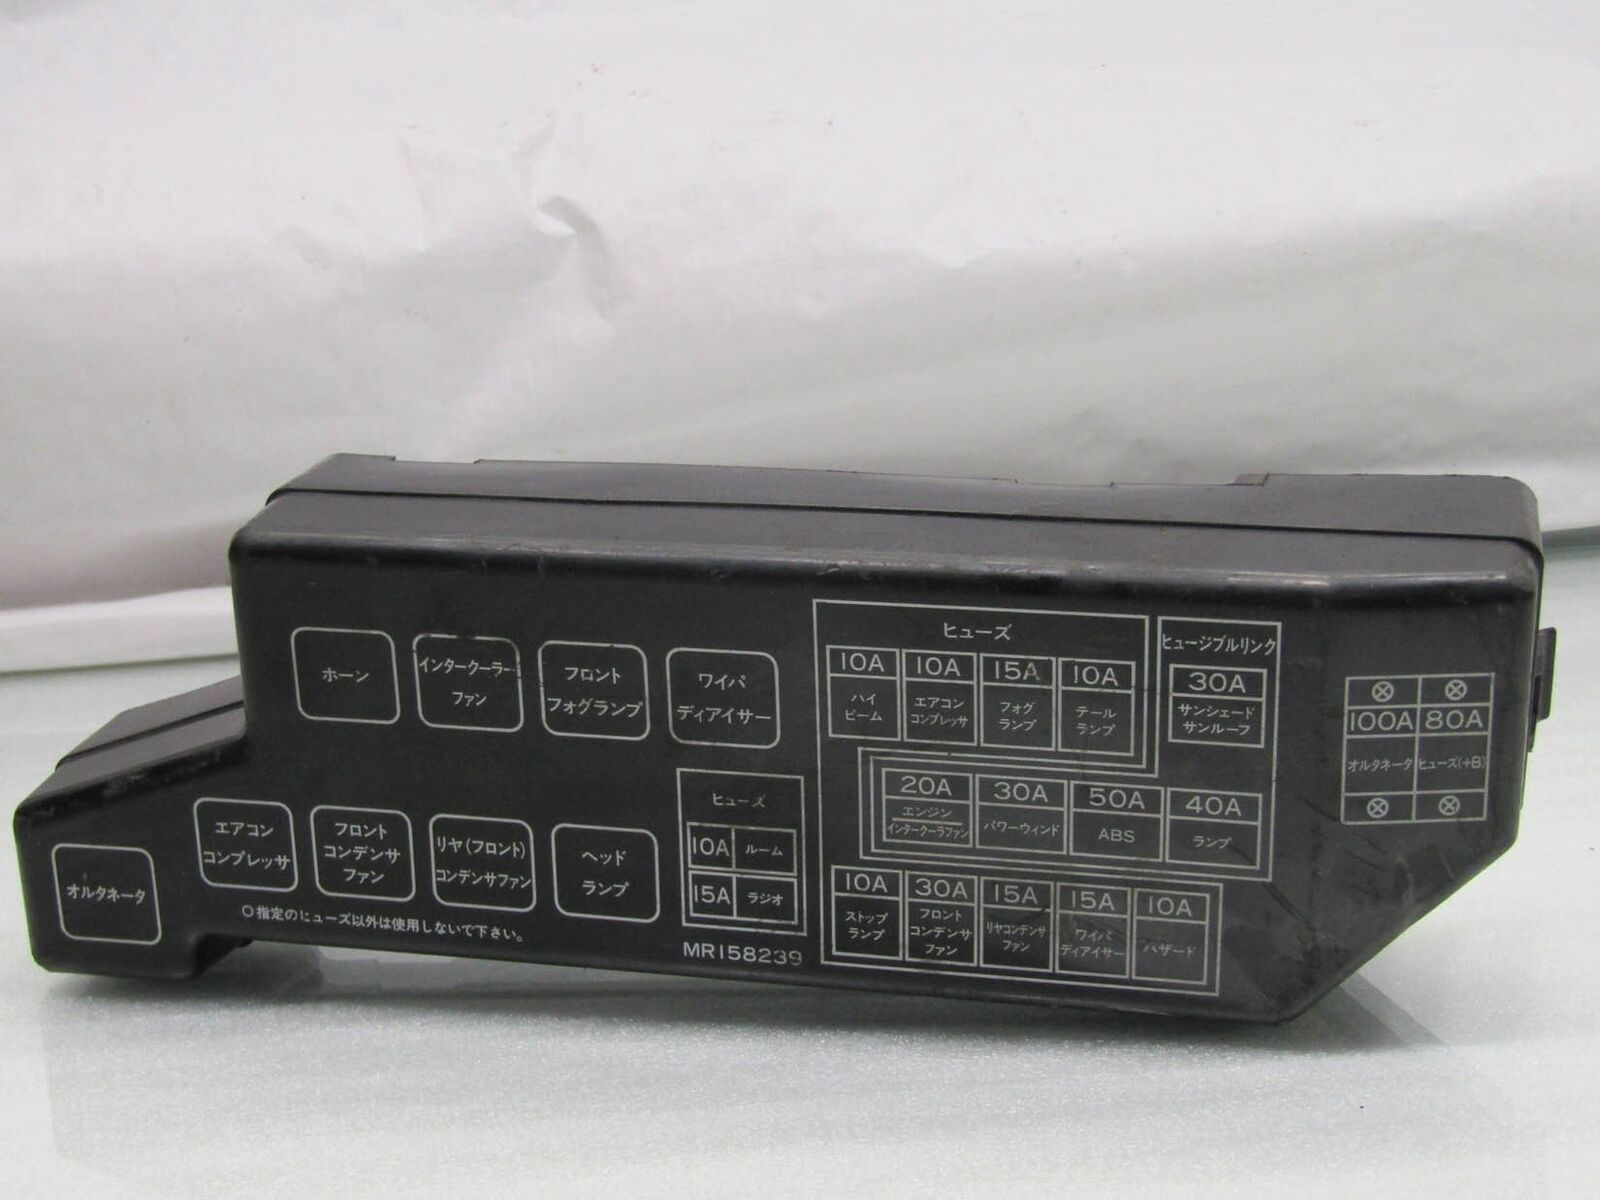 Mitsubishi Delica L400 28 4m40 Relay Fuse Box Lid Top Cover Smart Car 451 1 Of 5only Available